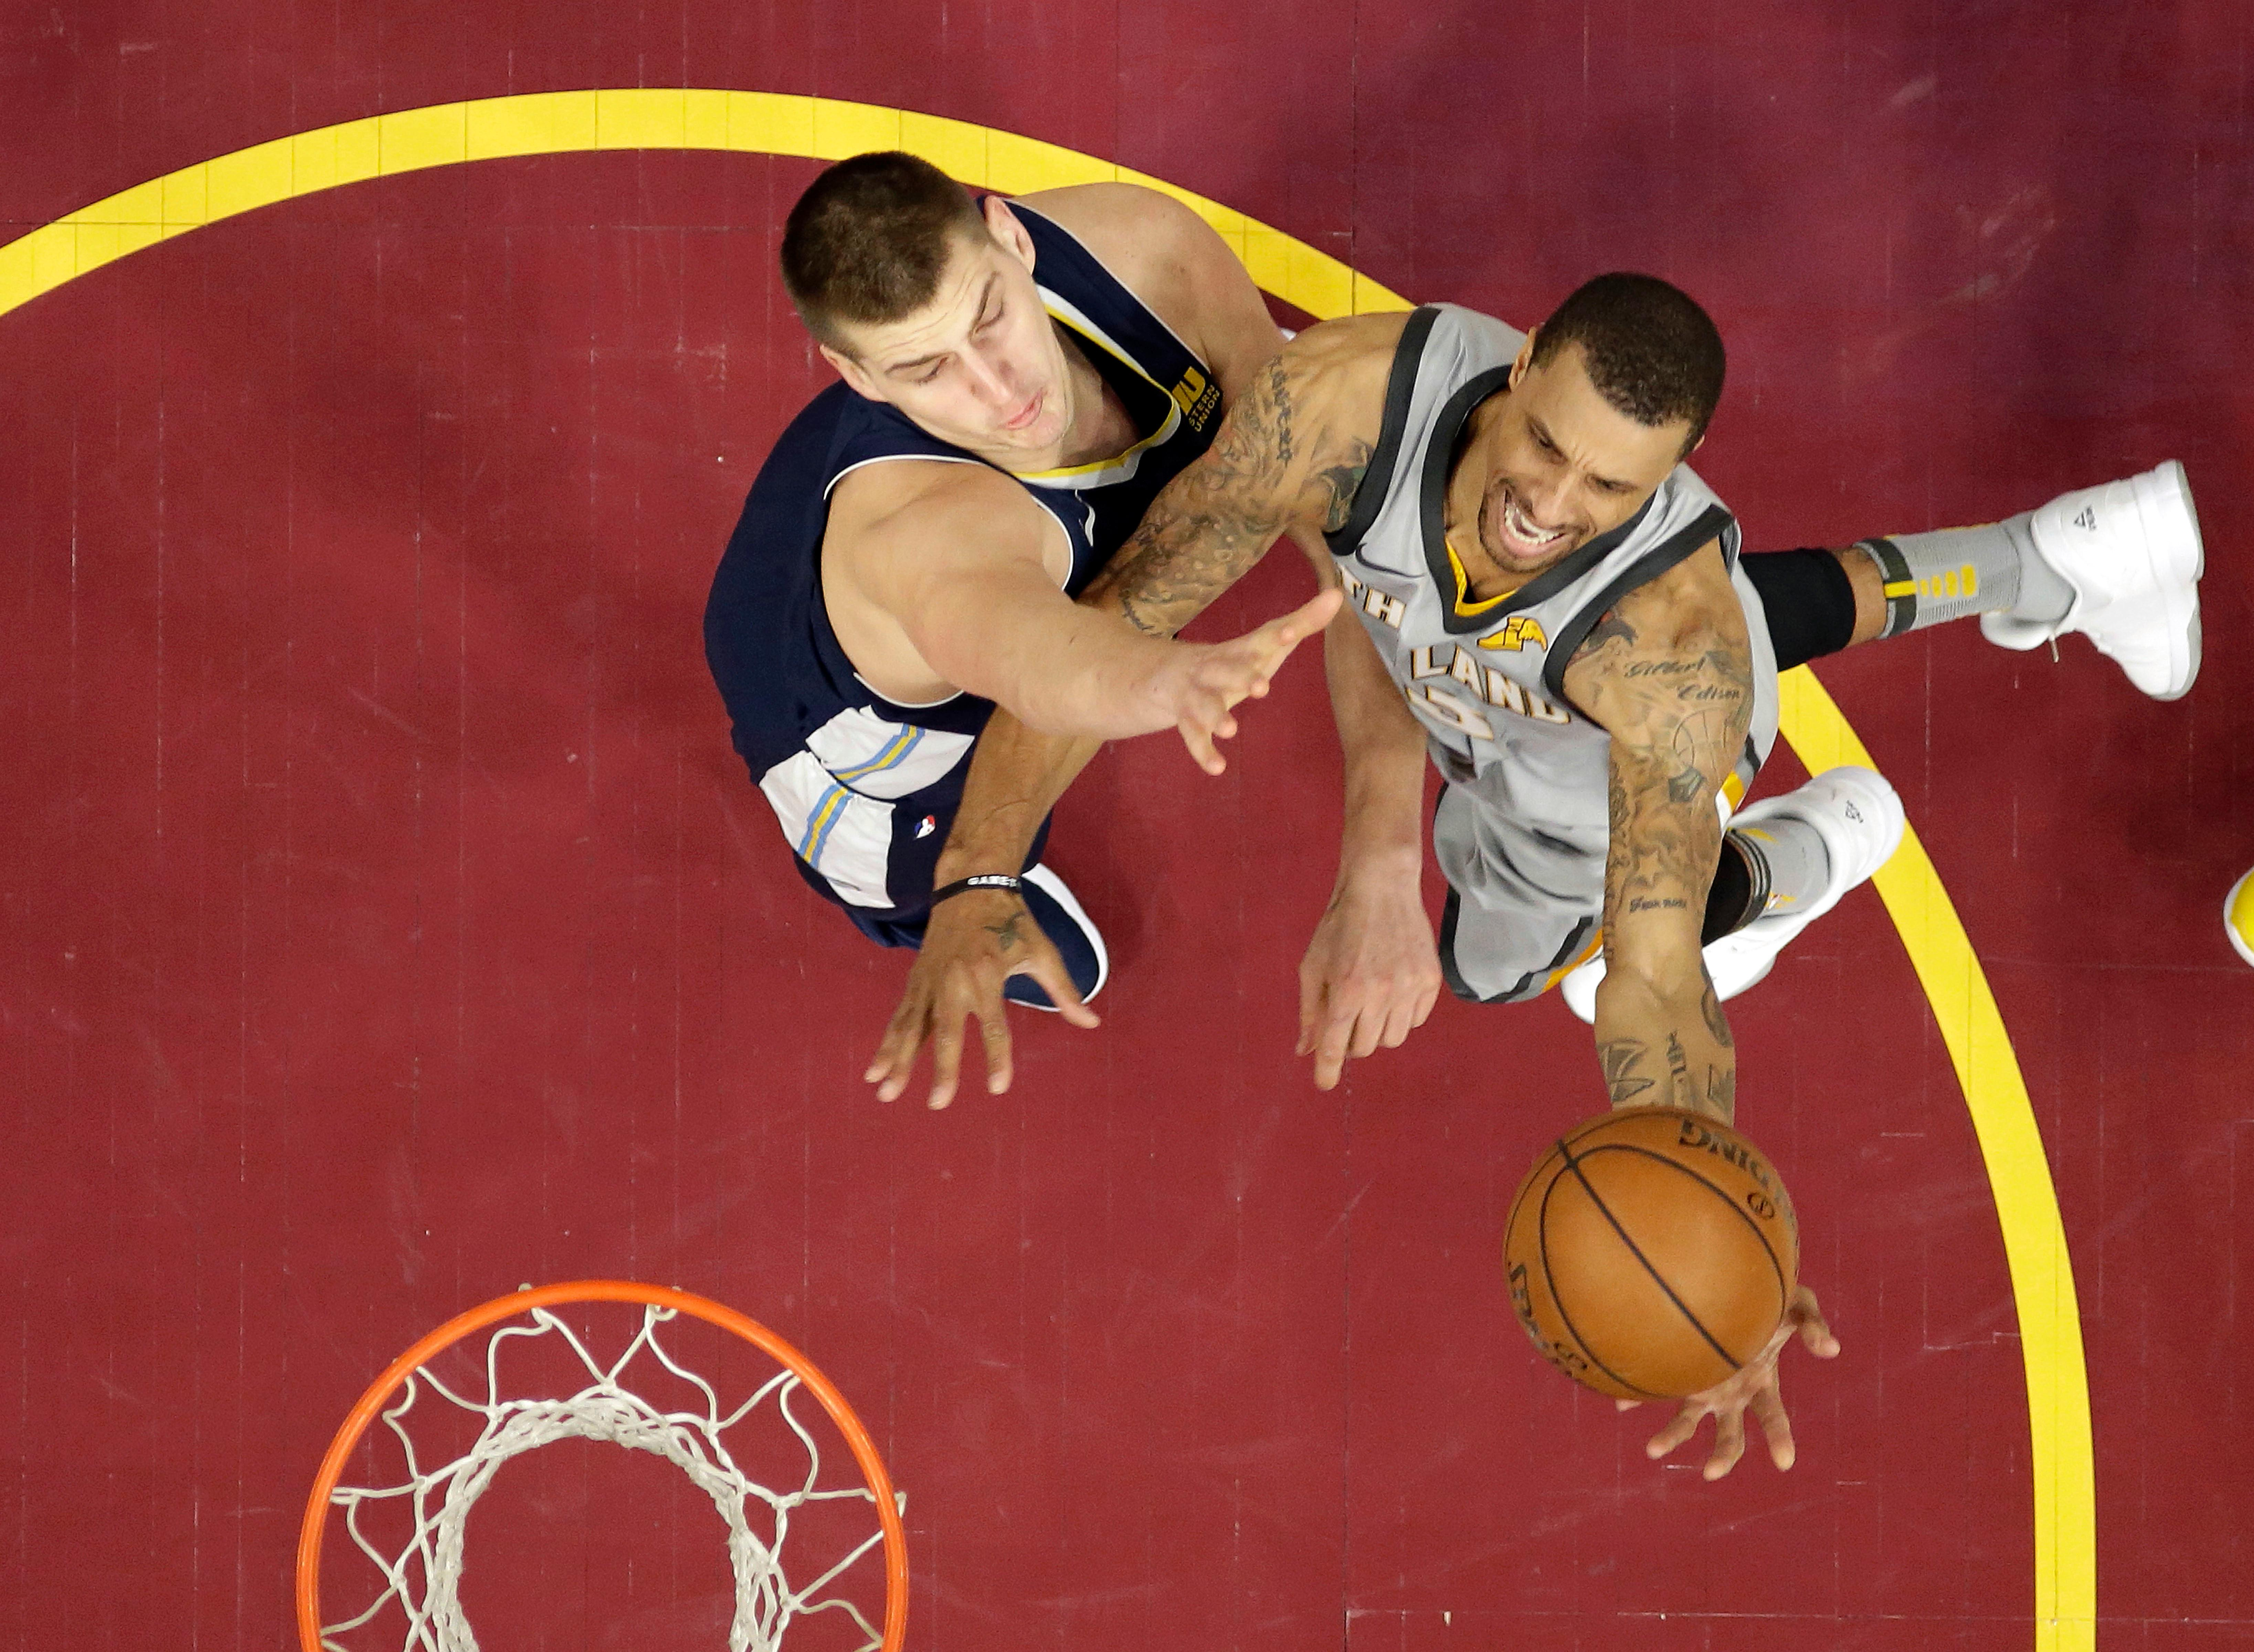 Cleveland Cavaliers' George Hill, right, drives to the basket against Denver Nuggets' Nikola Jokic, from Serbia, in the first half of an NBA basketball game, Saturday, March 3, 2018, in Cleveland. (AP Photo/Tony Dejak)